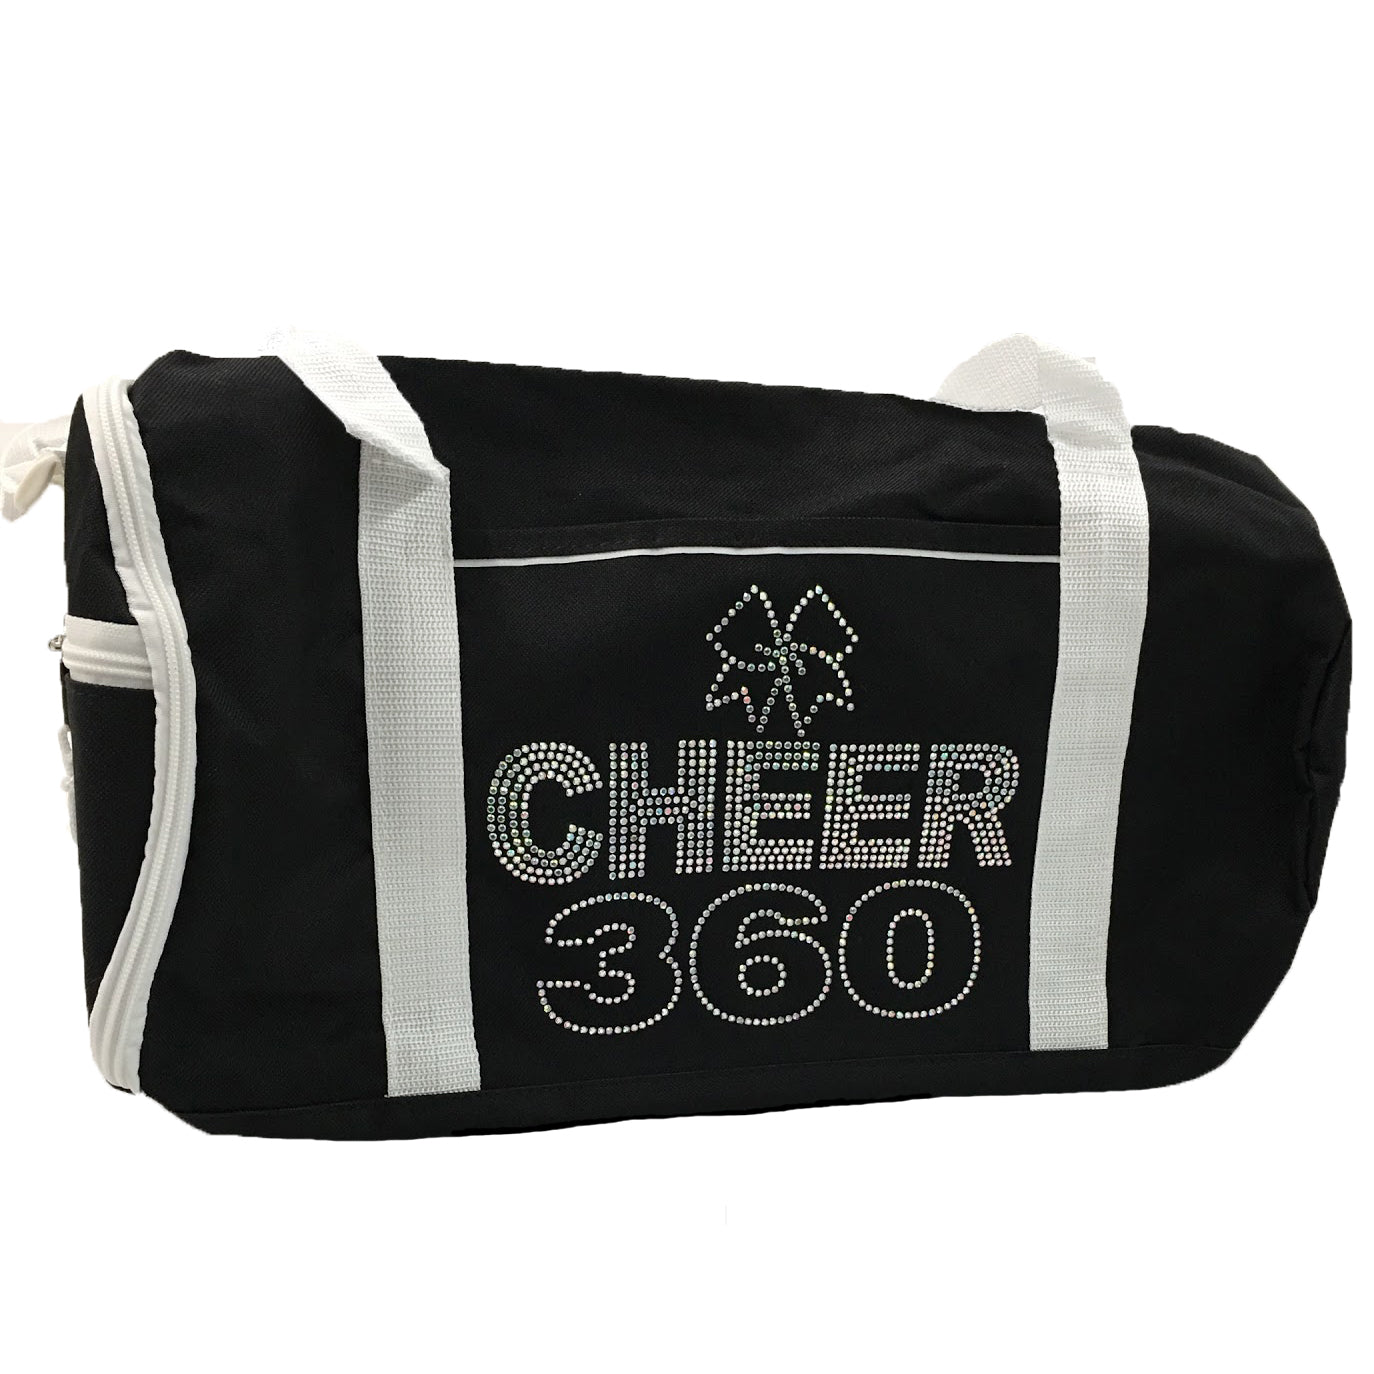 Personalized Two-Tone Sport CHEER 360 Duffel Bags with Player's Name